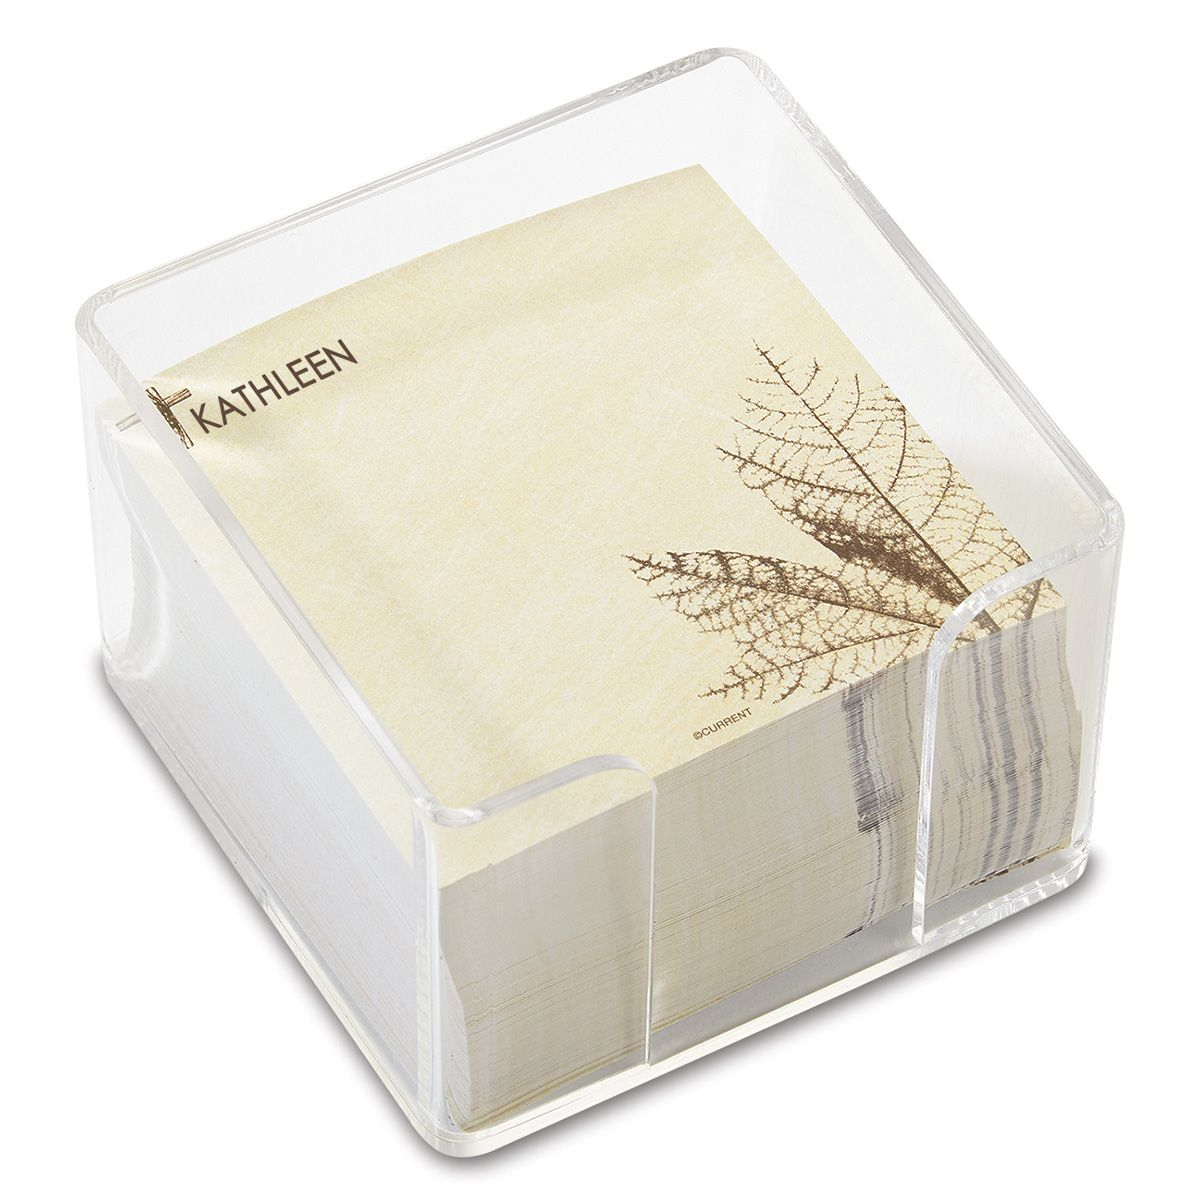 Cross Personalized Note Sheets in a Cube